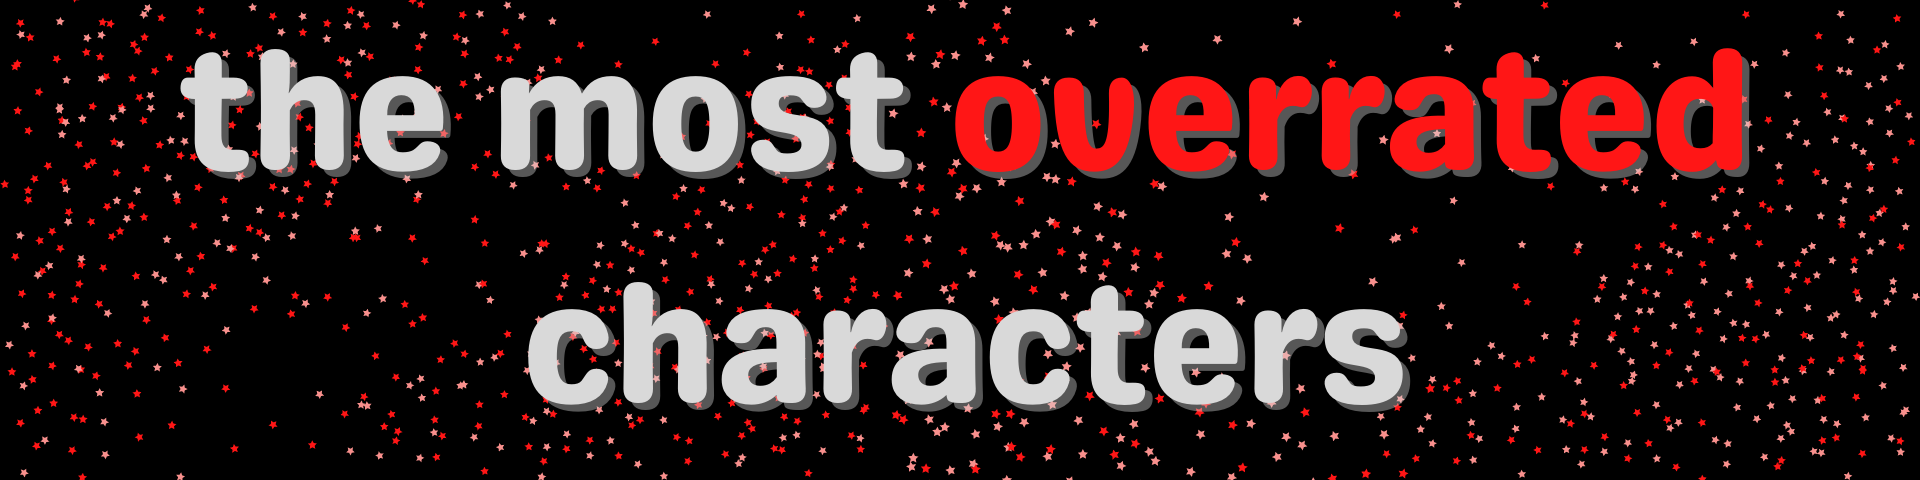 the most overrated characters